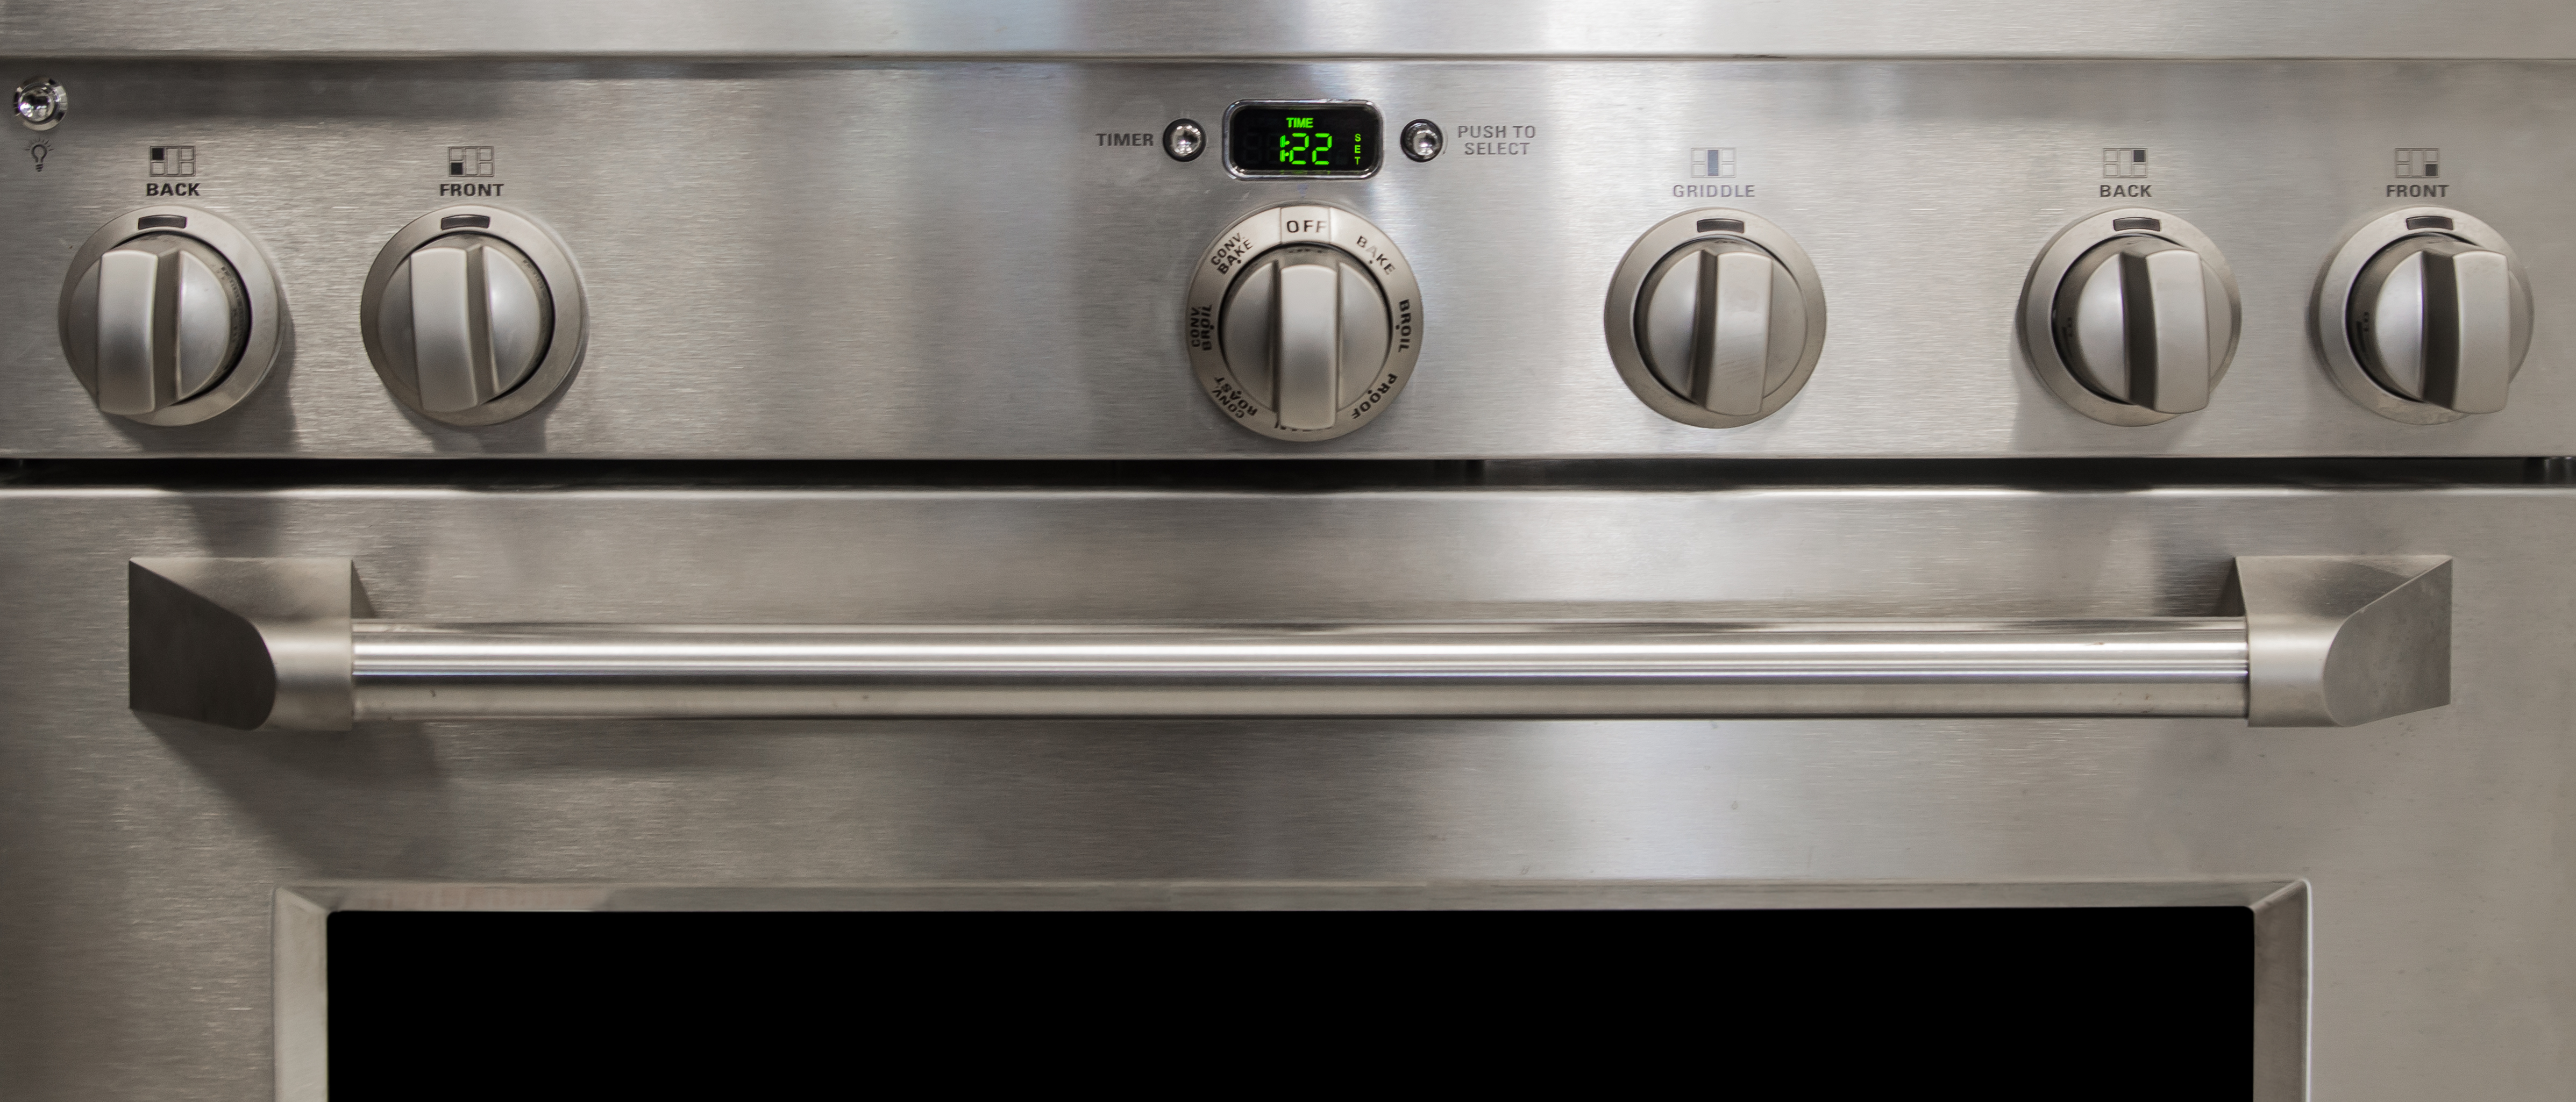 monogram zdp364ndpss 36-inch dual-fuel range review